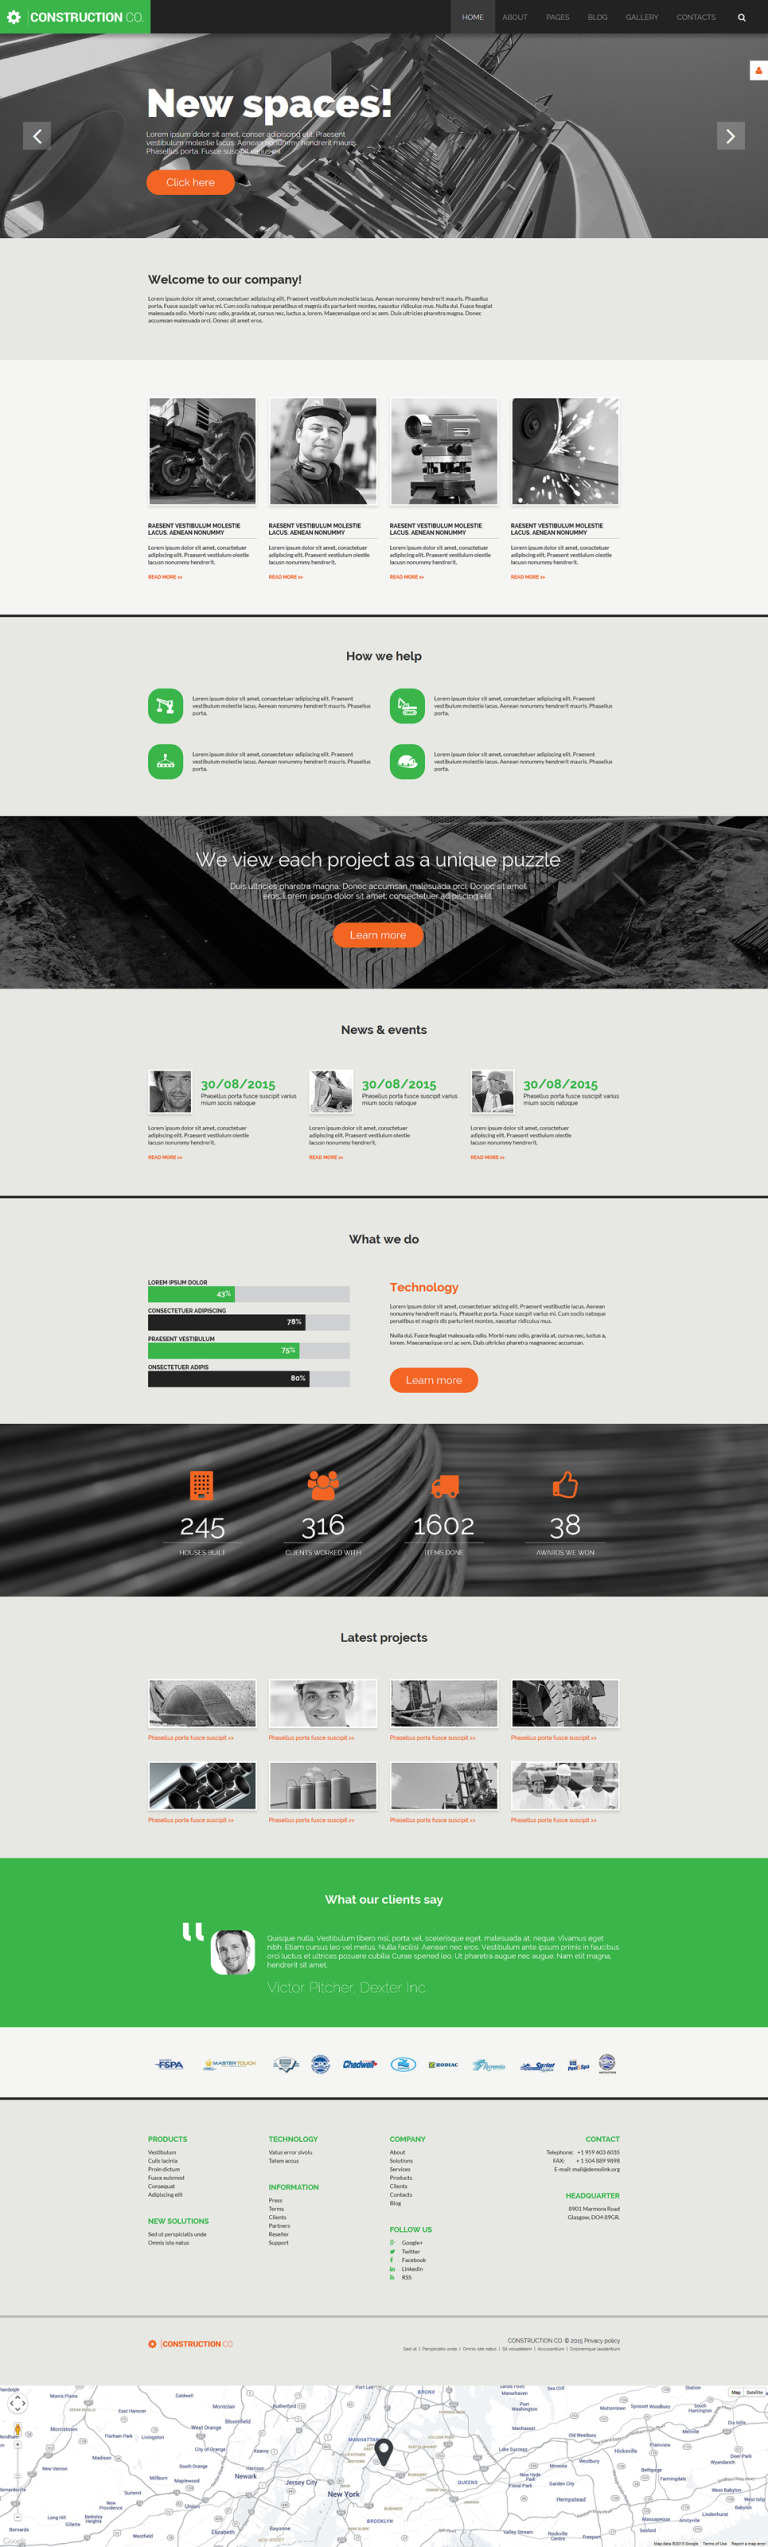 Construction Co Joomla Template New Screenshots BIG